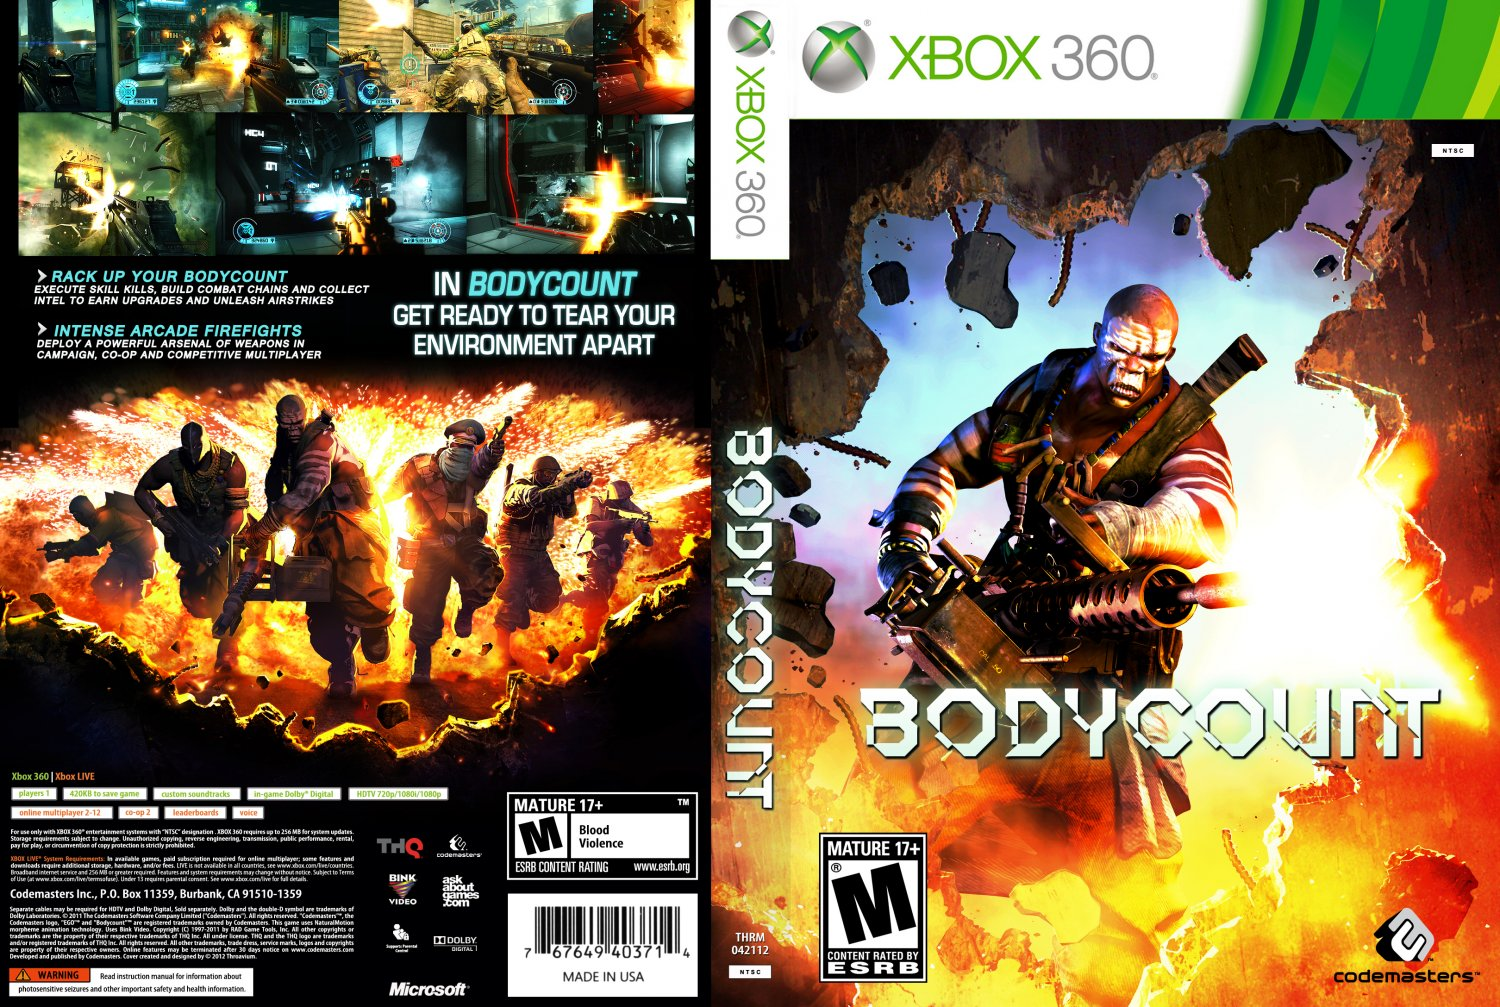 Bodycount - XBOX 360 Game Covers - x360-bc-thrm-front-NTSC ...